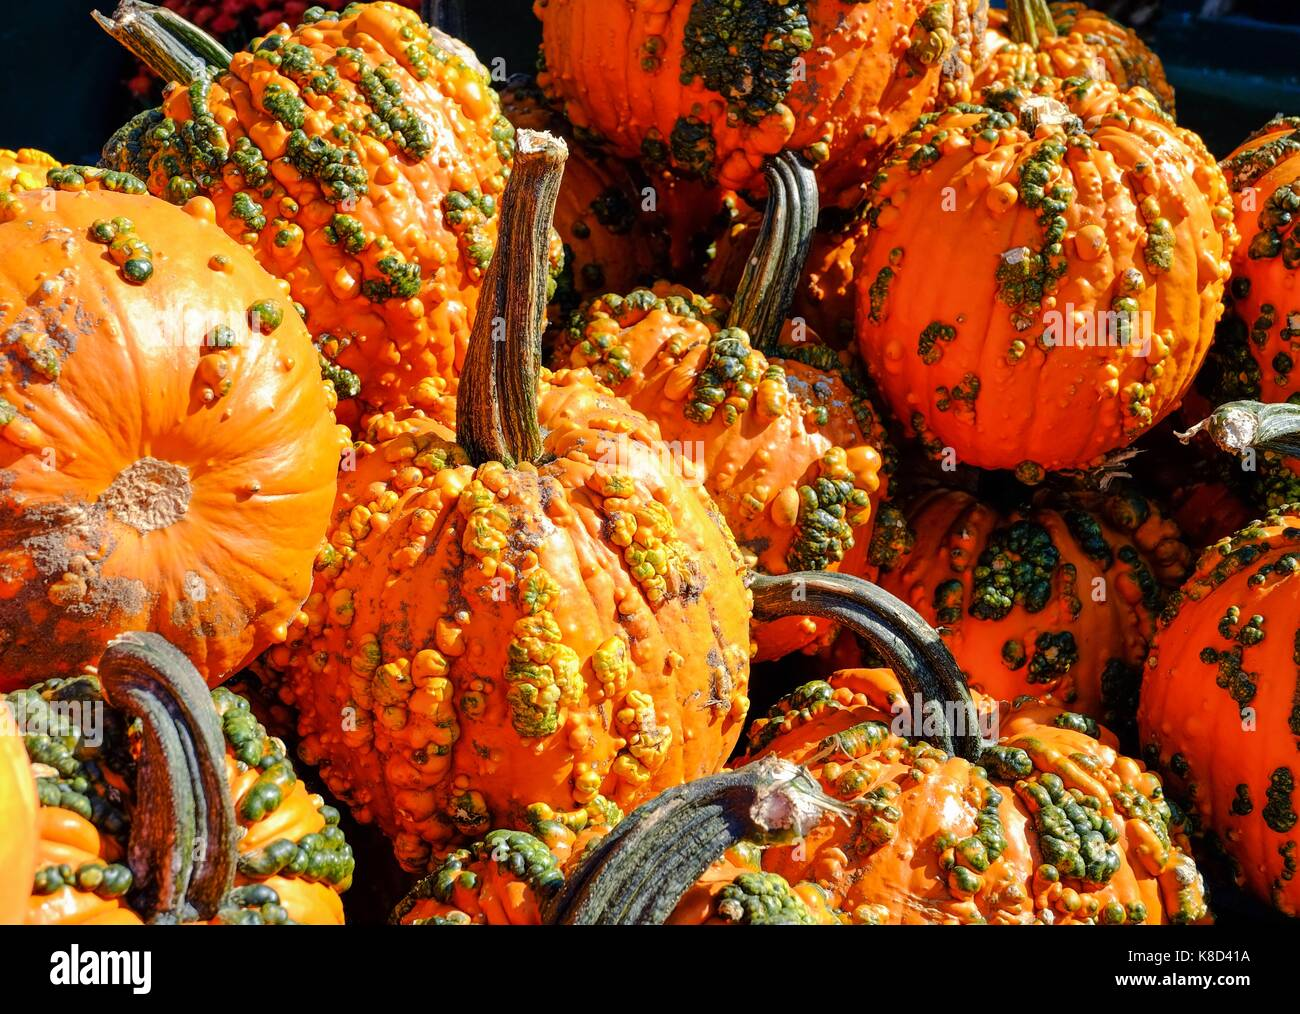 Pile of Pumpkins with Warts at a fresh market - Stock Image